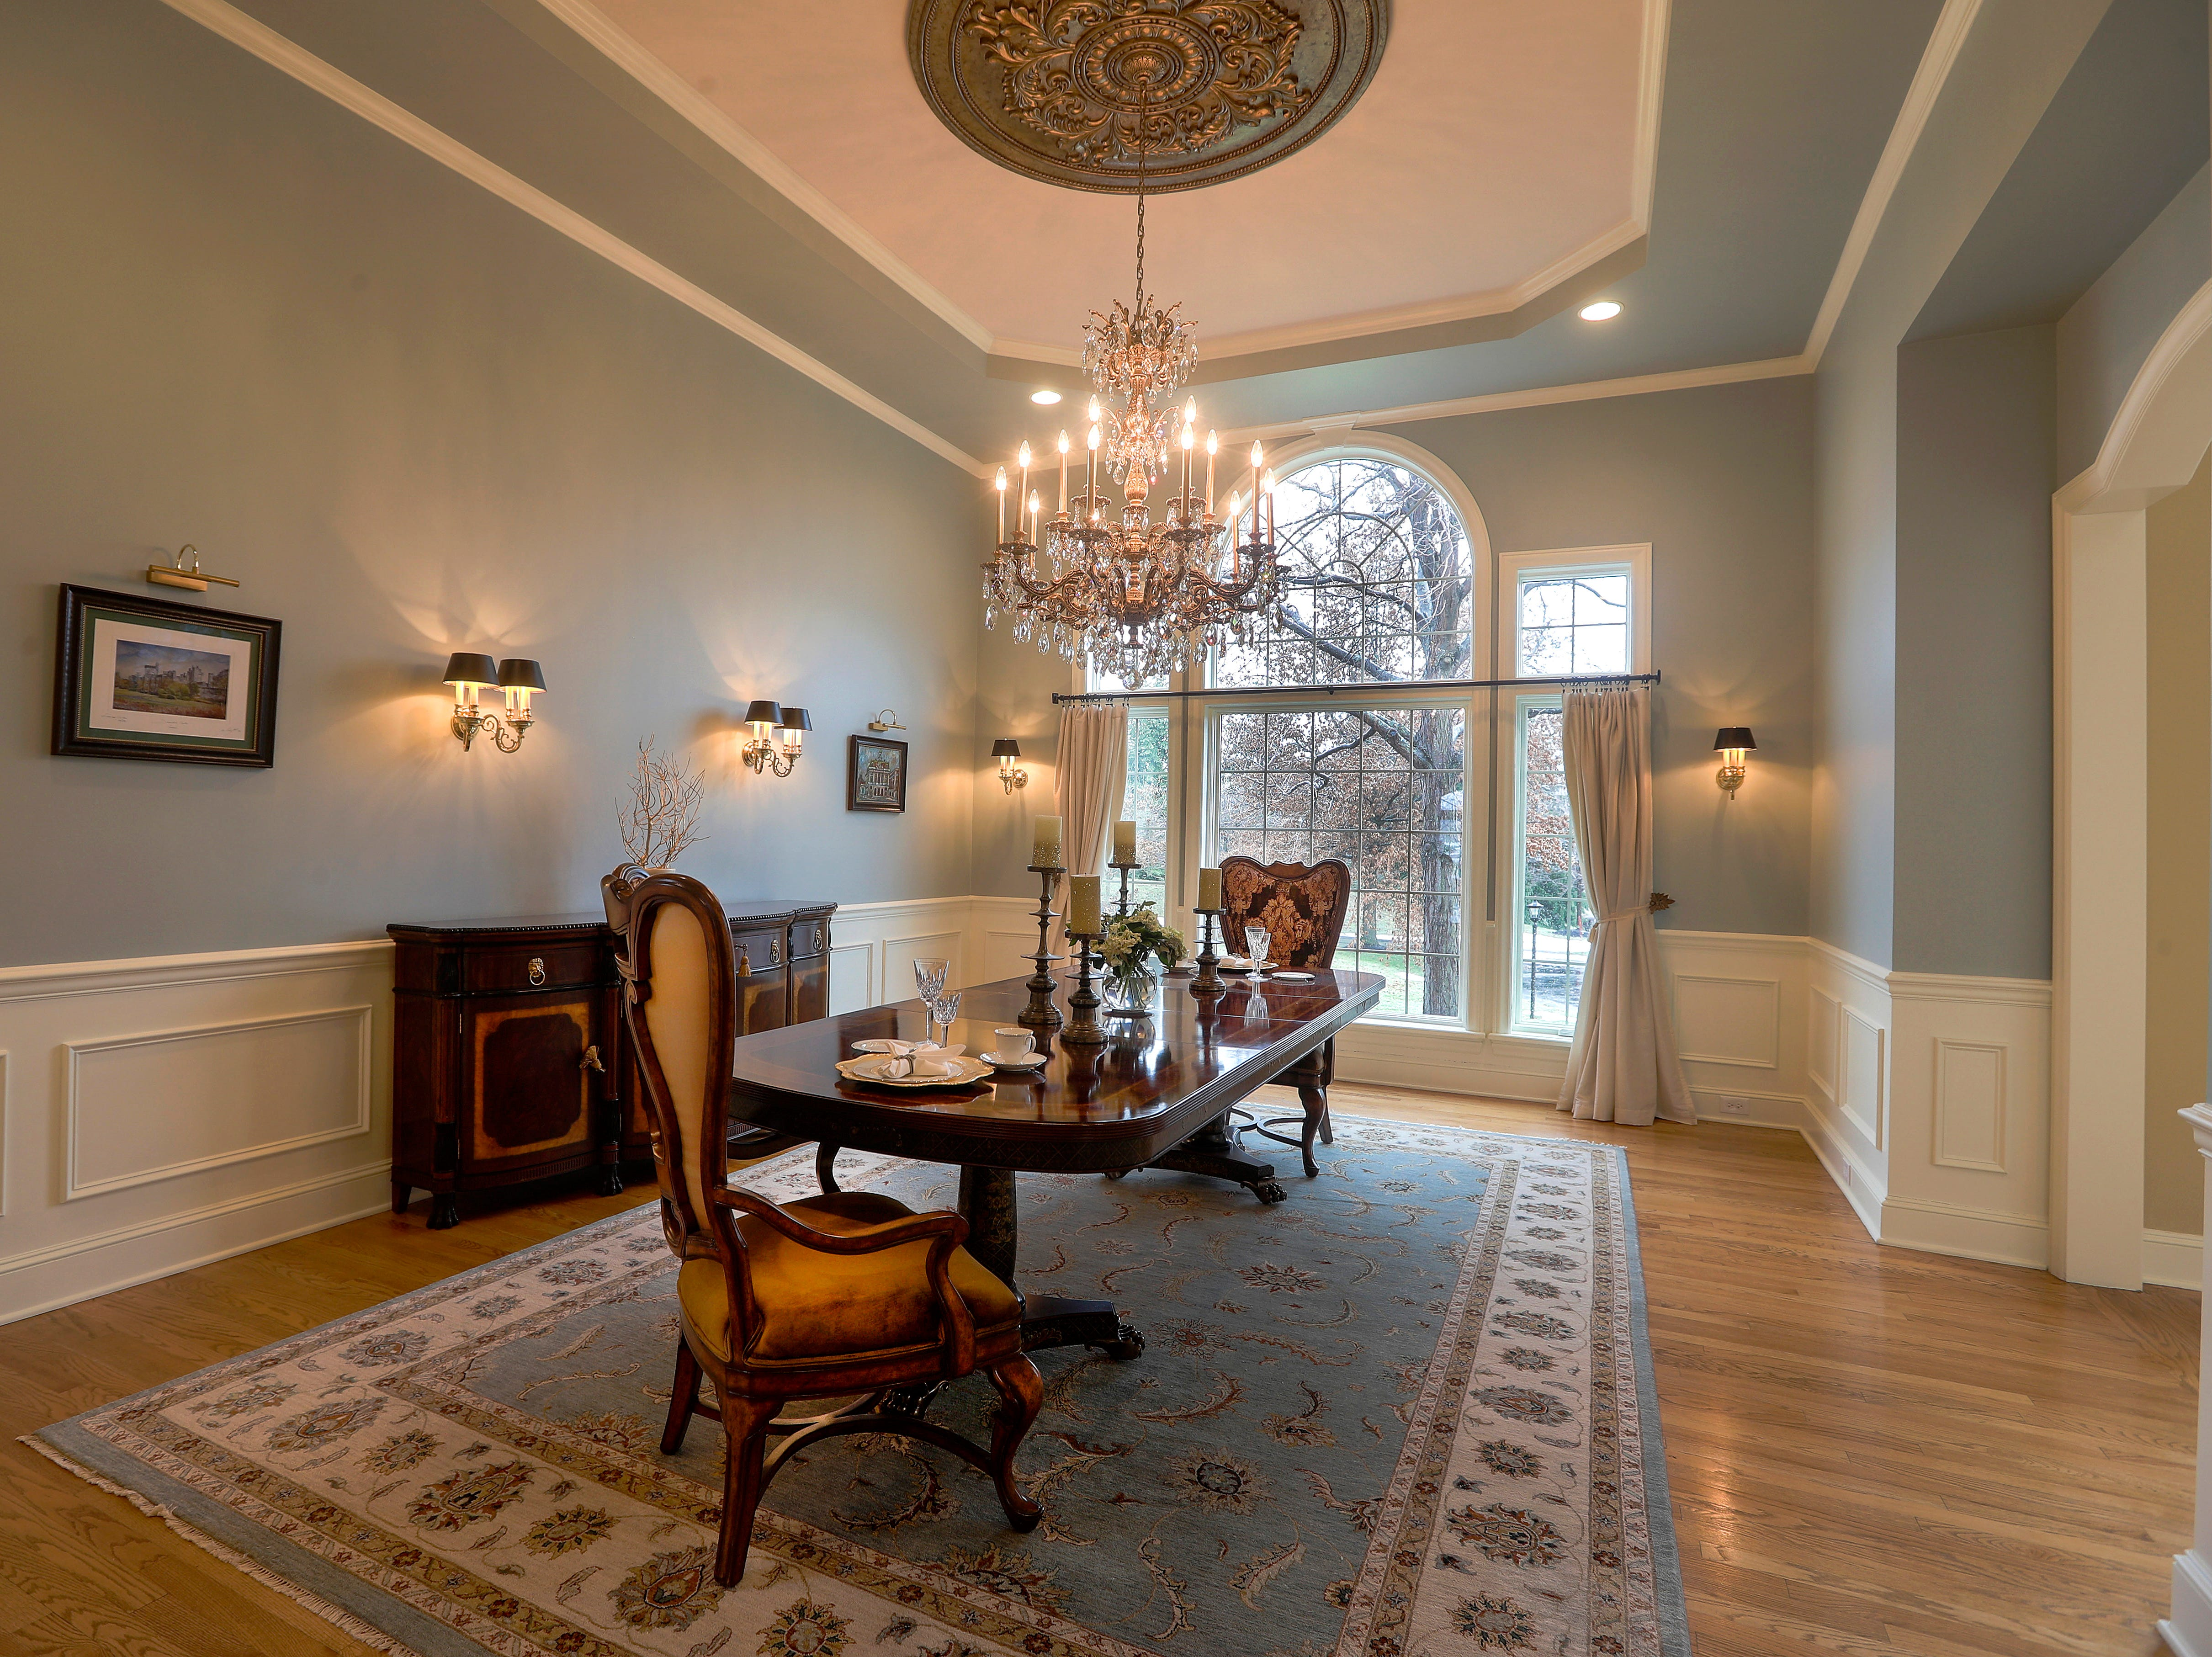 A large formal dining room.